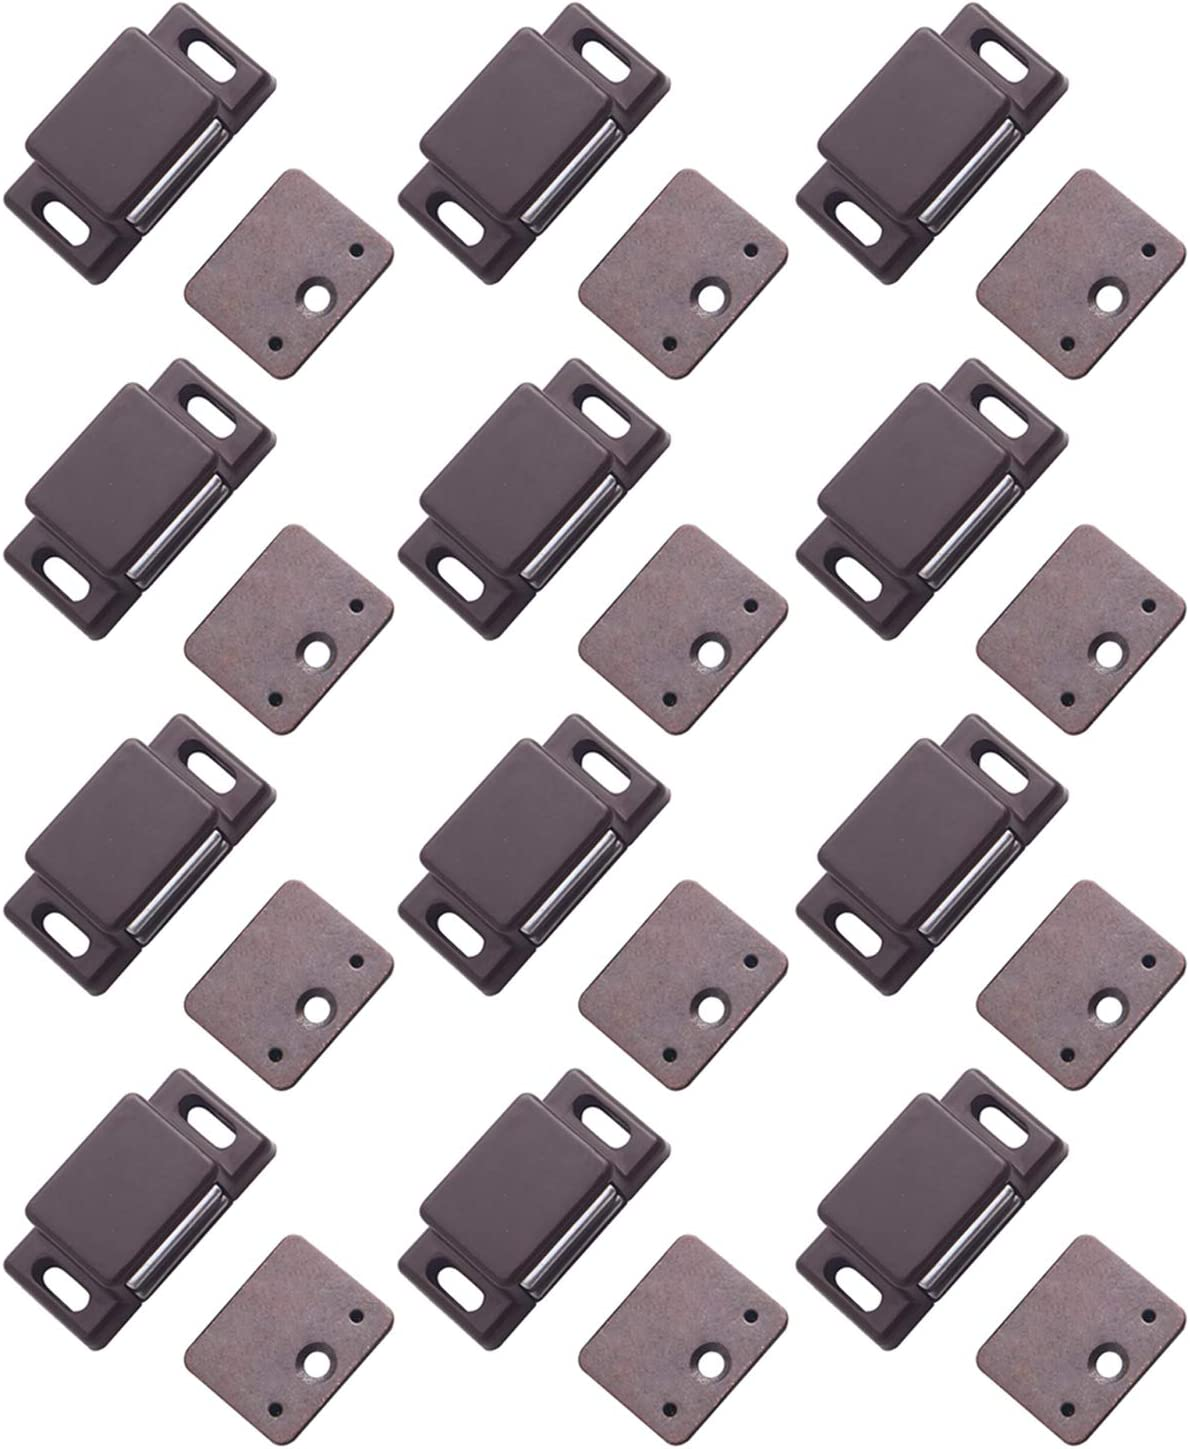 """Antrader 12-Pack 10-15lbs Magnetic Cabinet Door Catch Plastic Stop Holder Closet Latch with Screws, 1.6"""" x 0.8"""" x 0.5"""", Brown"""